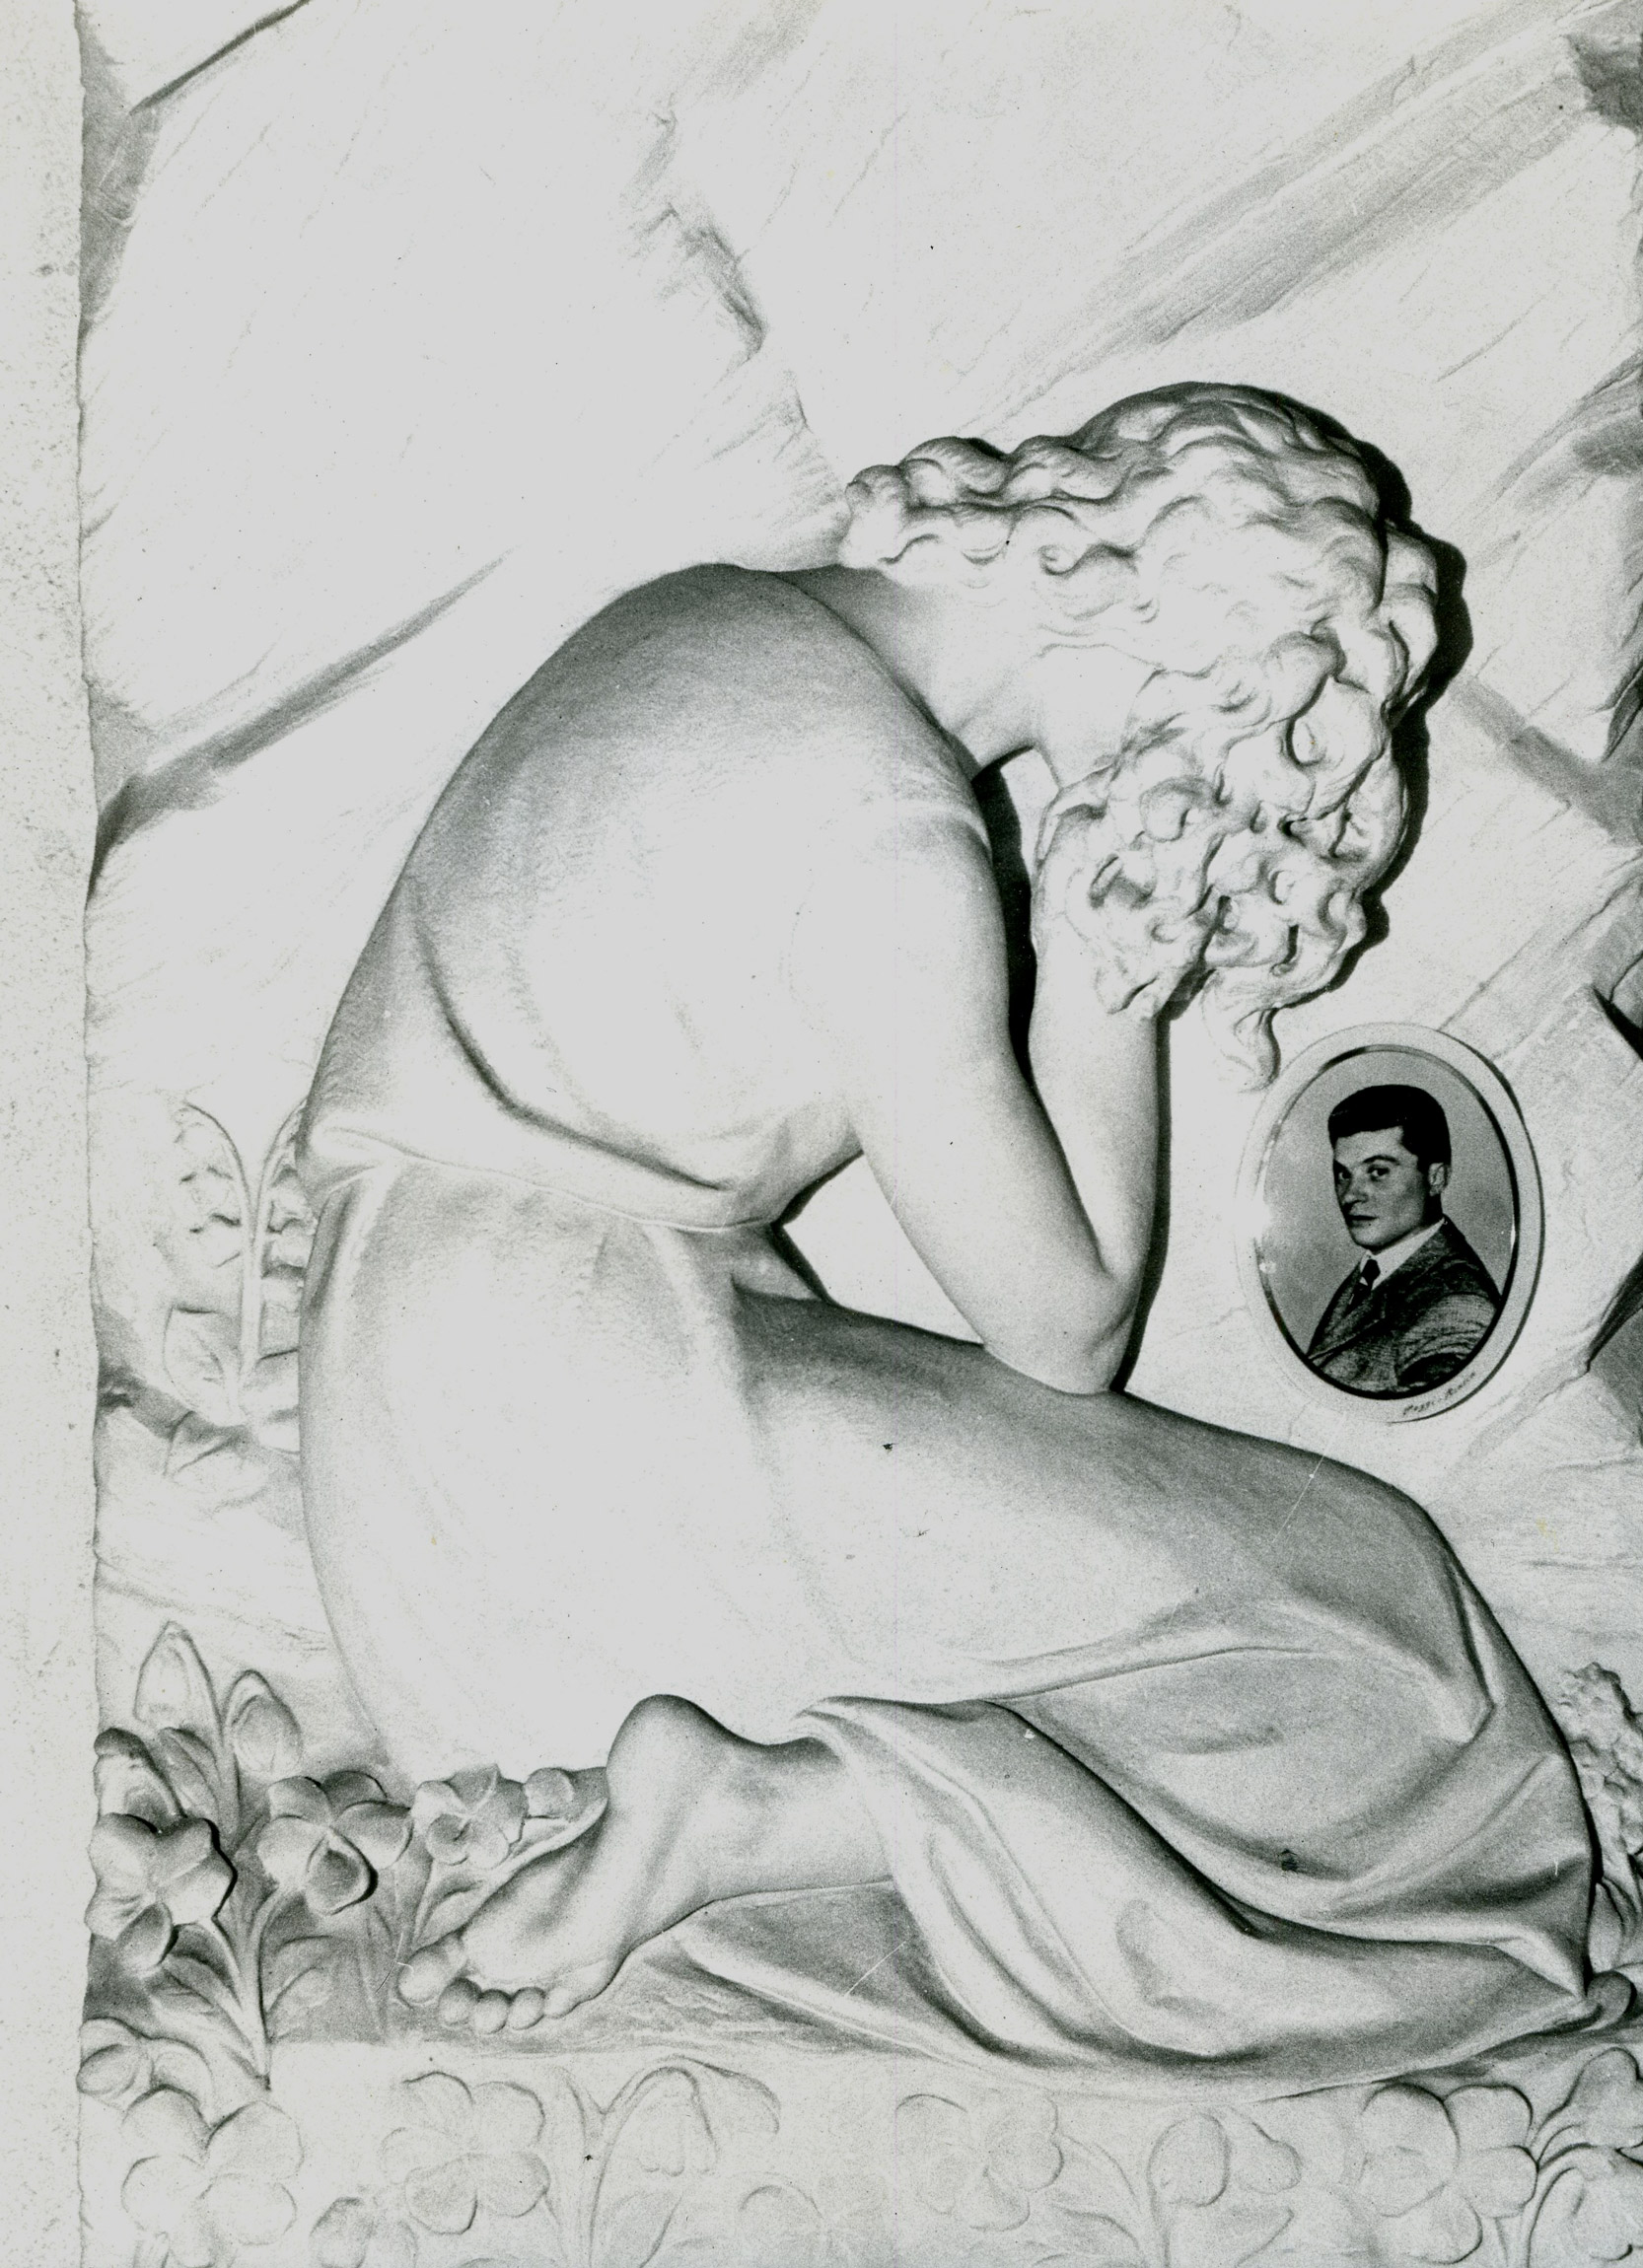 Marble fresco of a woman with hands over face. Framed portrait photo of man beside her.